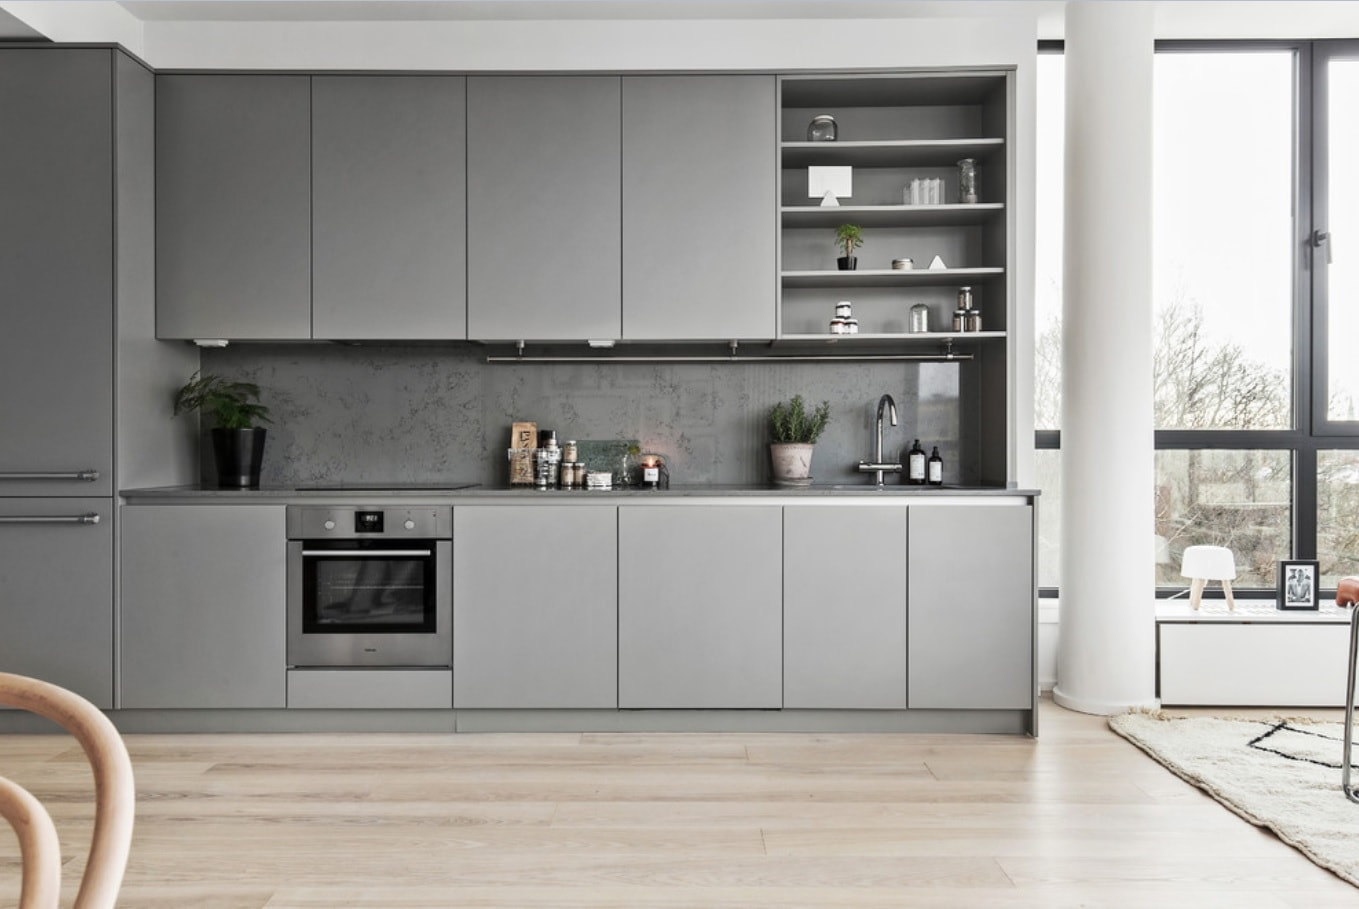 Nordic Interior Design Examples in Real Homes Photos. Smooth gray facades in the modern kitchen with alder colored laminate